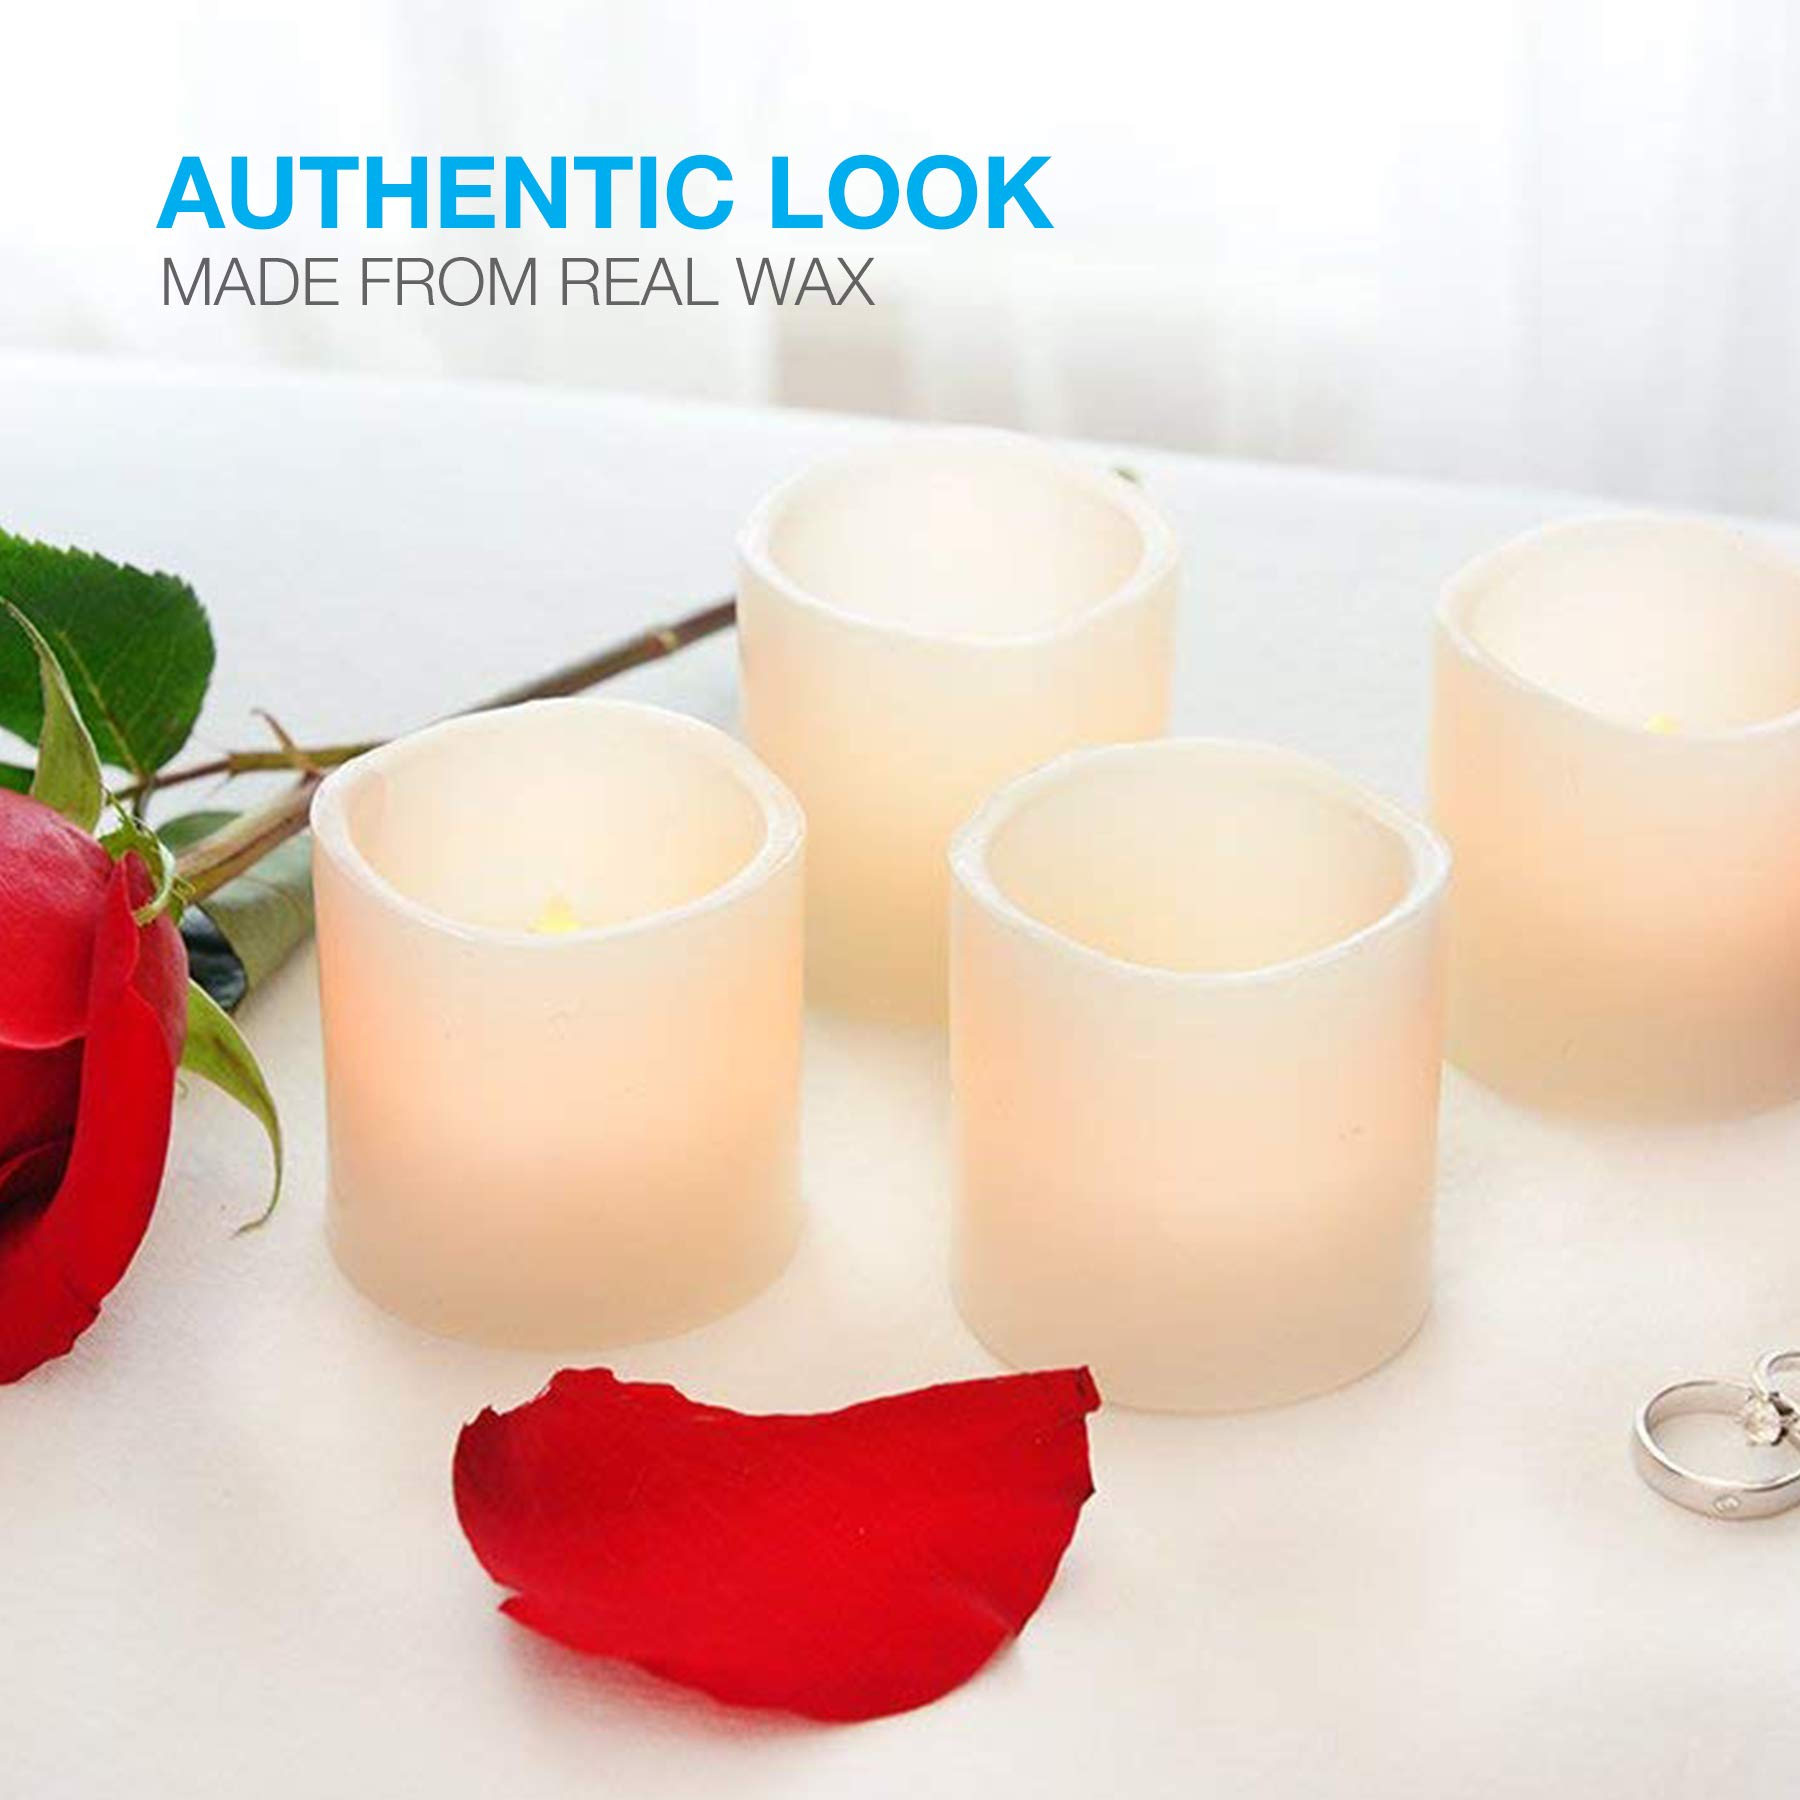 Vont Flameless LED Candles, Flickering, Battery Powered, Real Wax, Realistic Decor Unscented, 6 Pack, Yellow Light by Vont (Image #3)